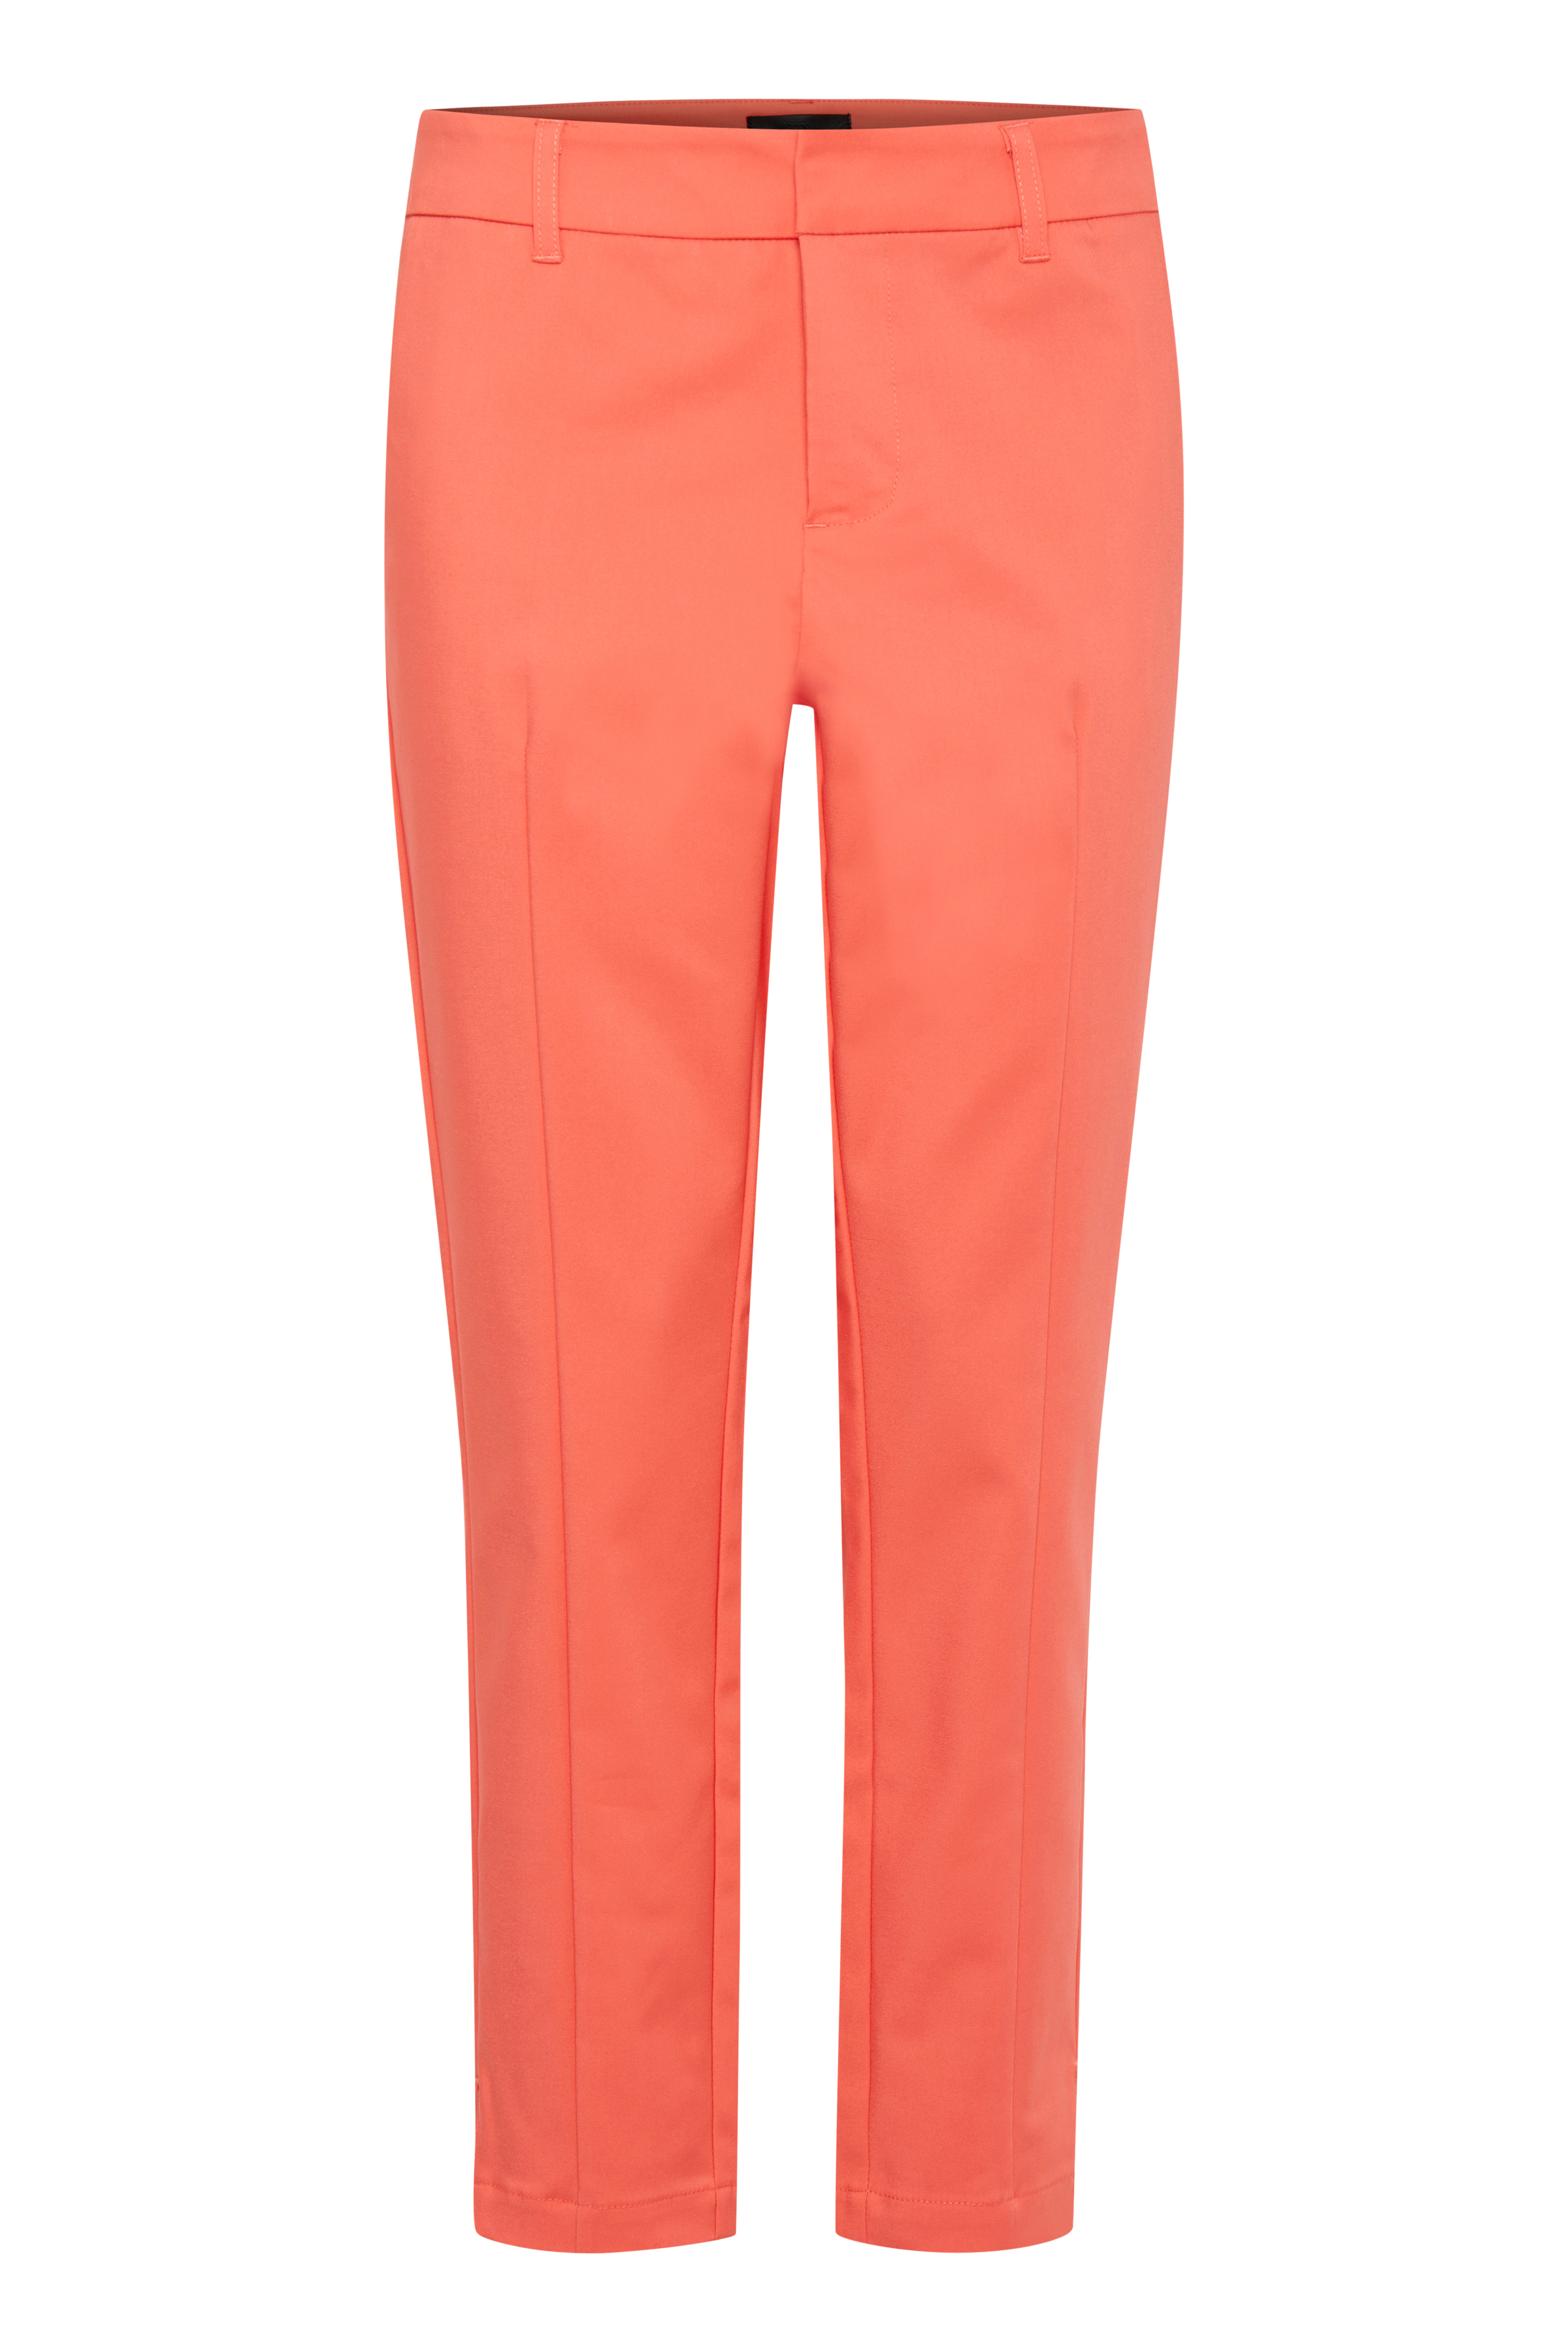 Image of Pulz Jeans Dame Bukser - Deep Sea Coral